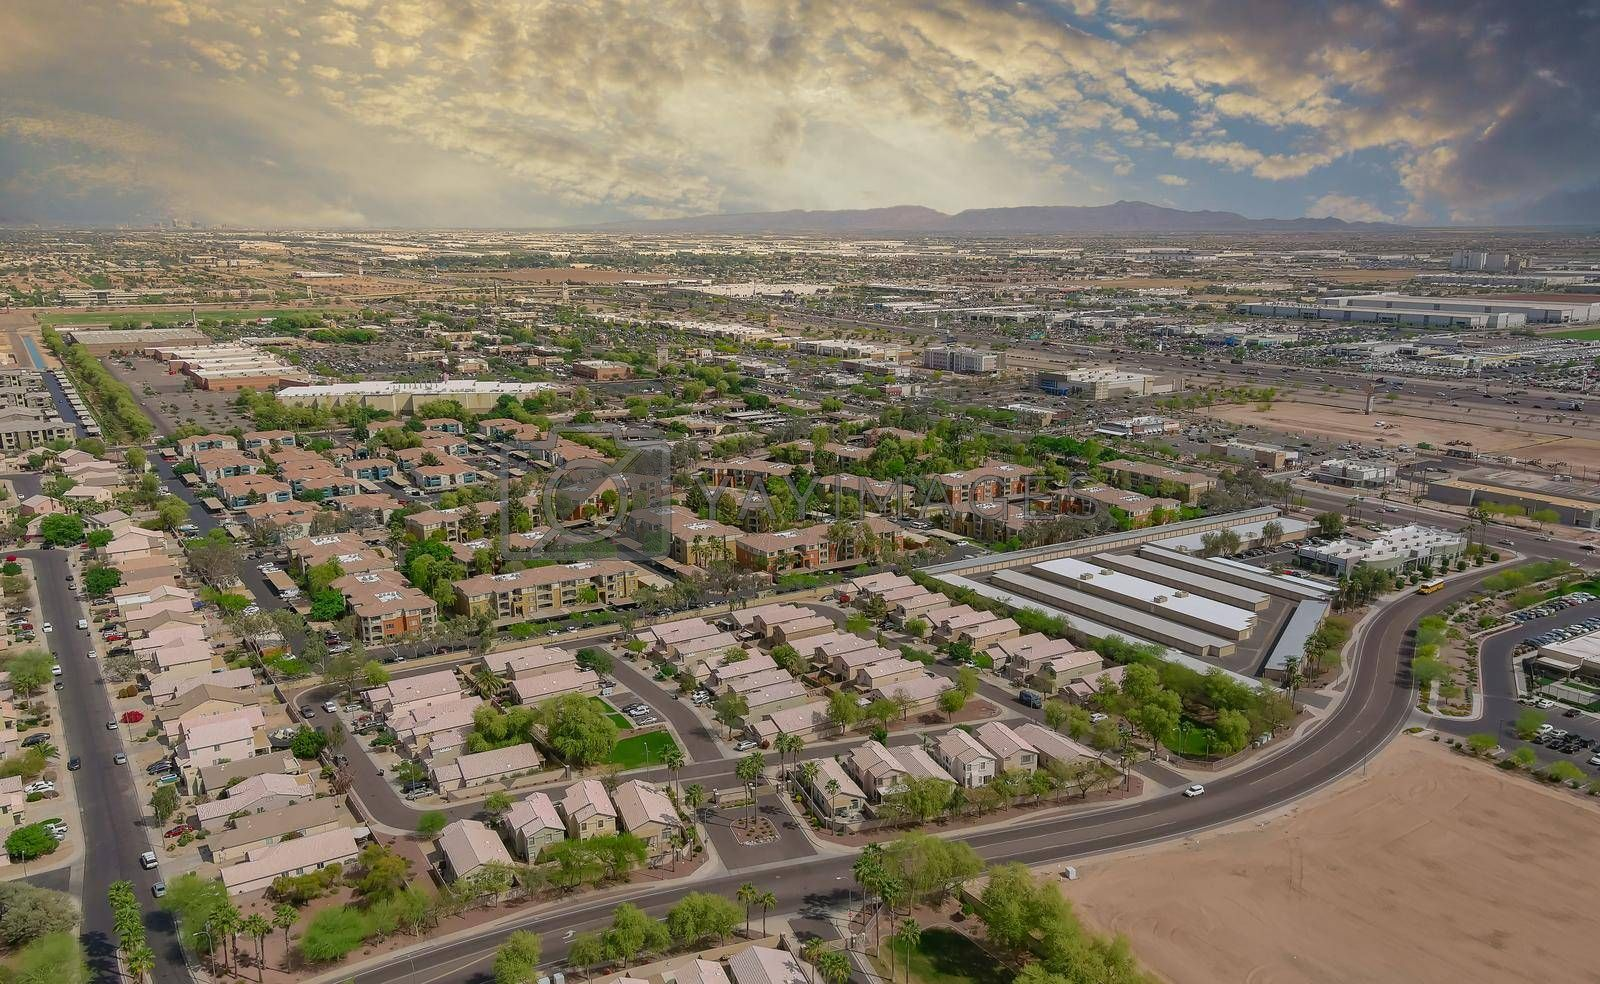 Royalty free image of Aerial view of mixing single family homes, apartment buildings a residential district a Avondale near Phoenix Arizona US by ungvar